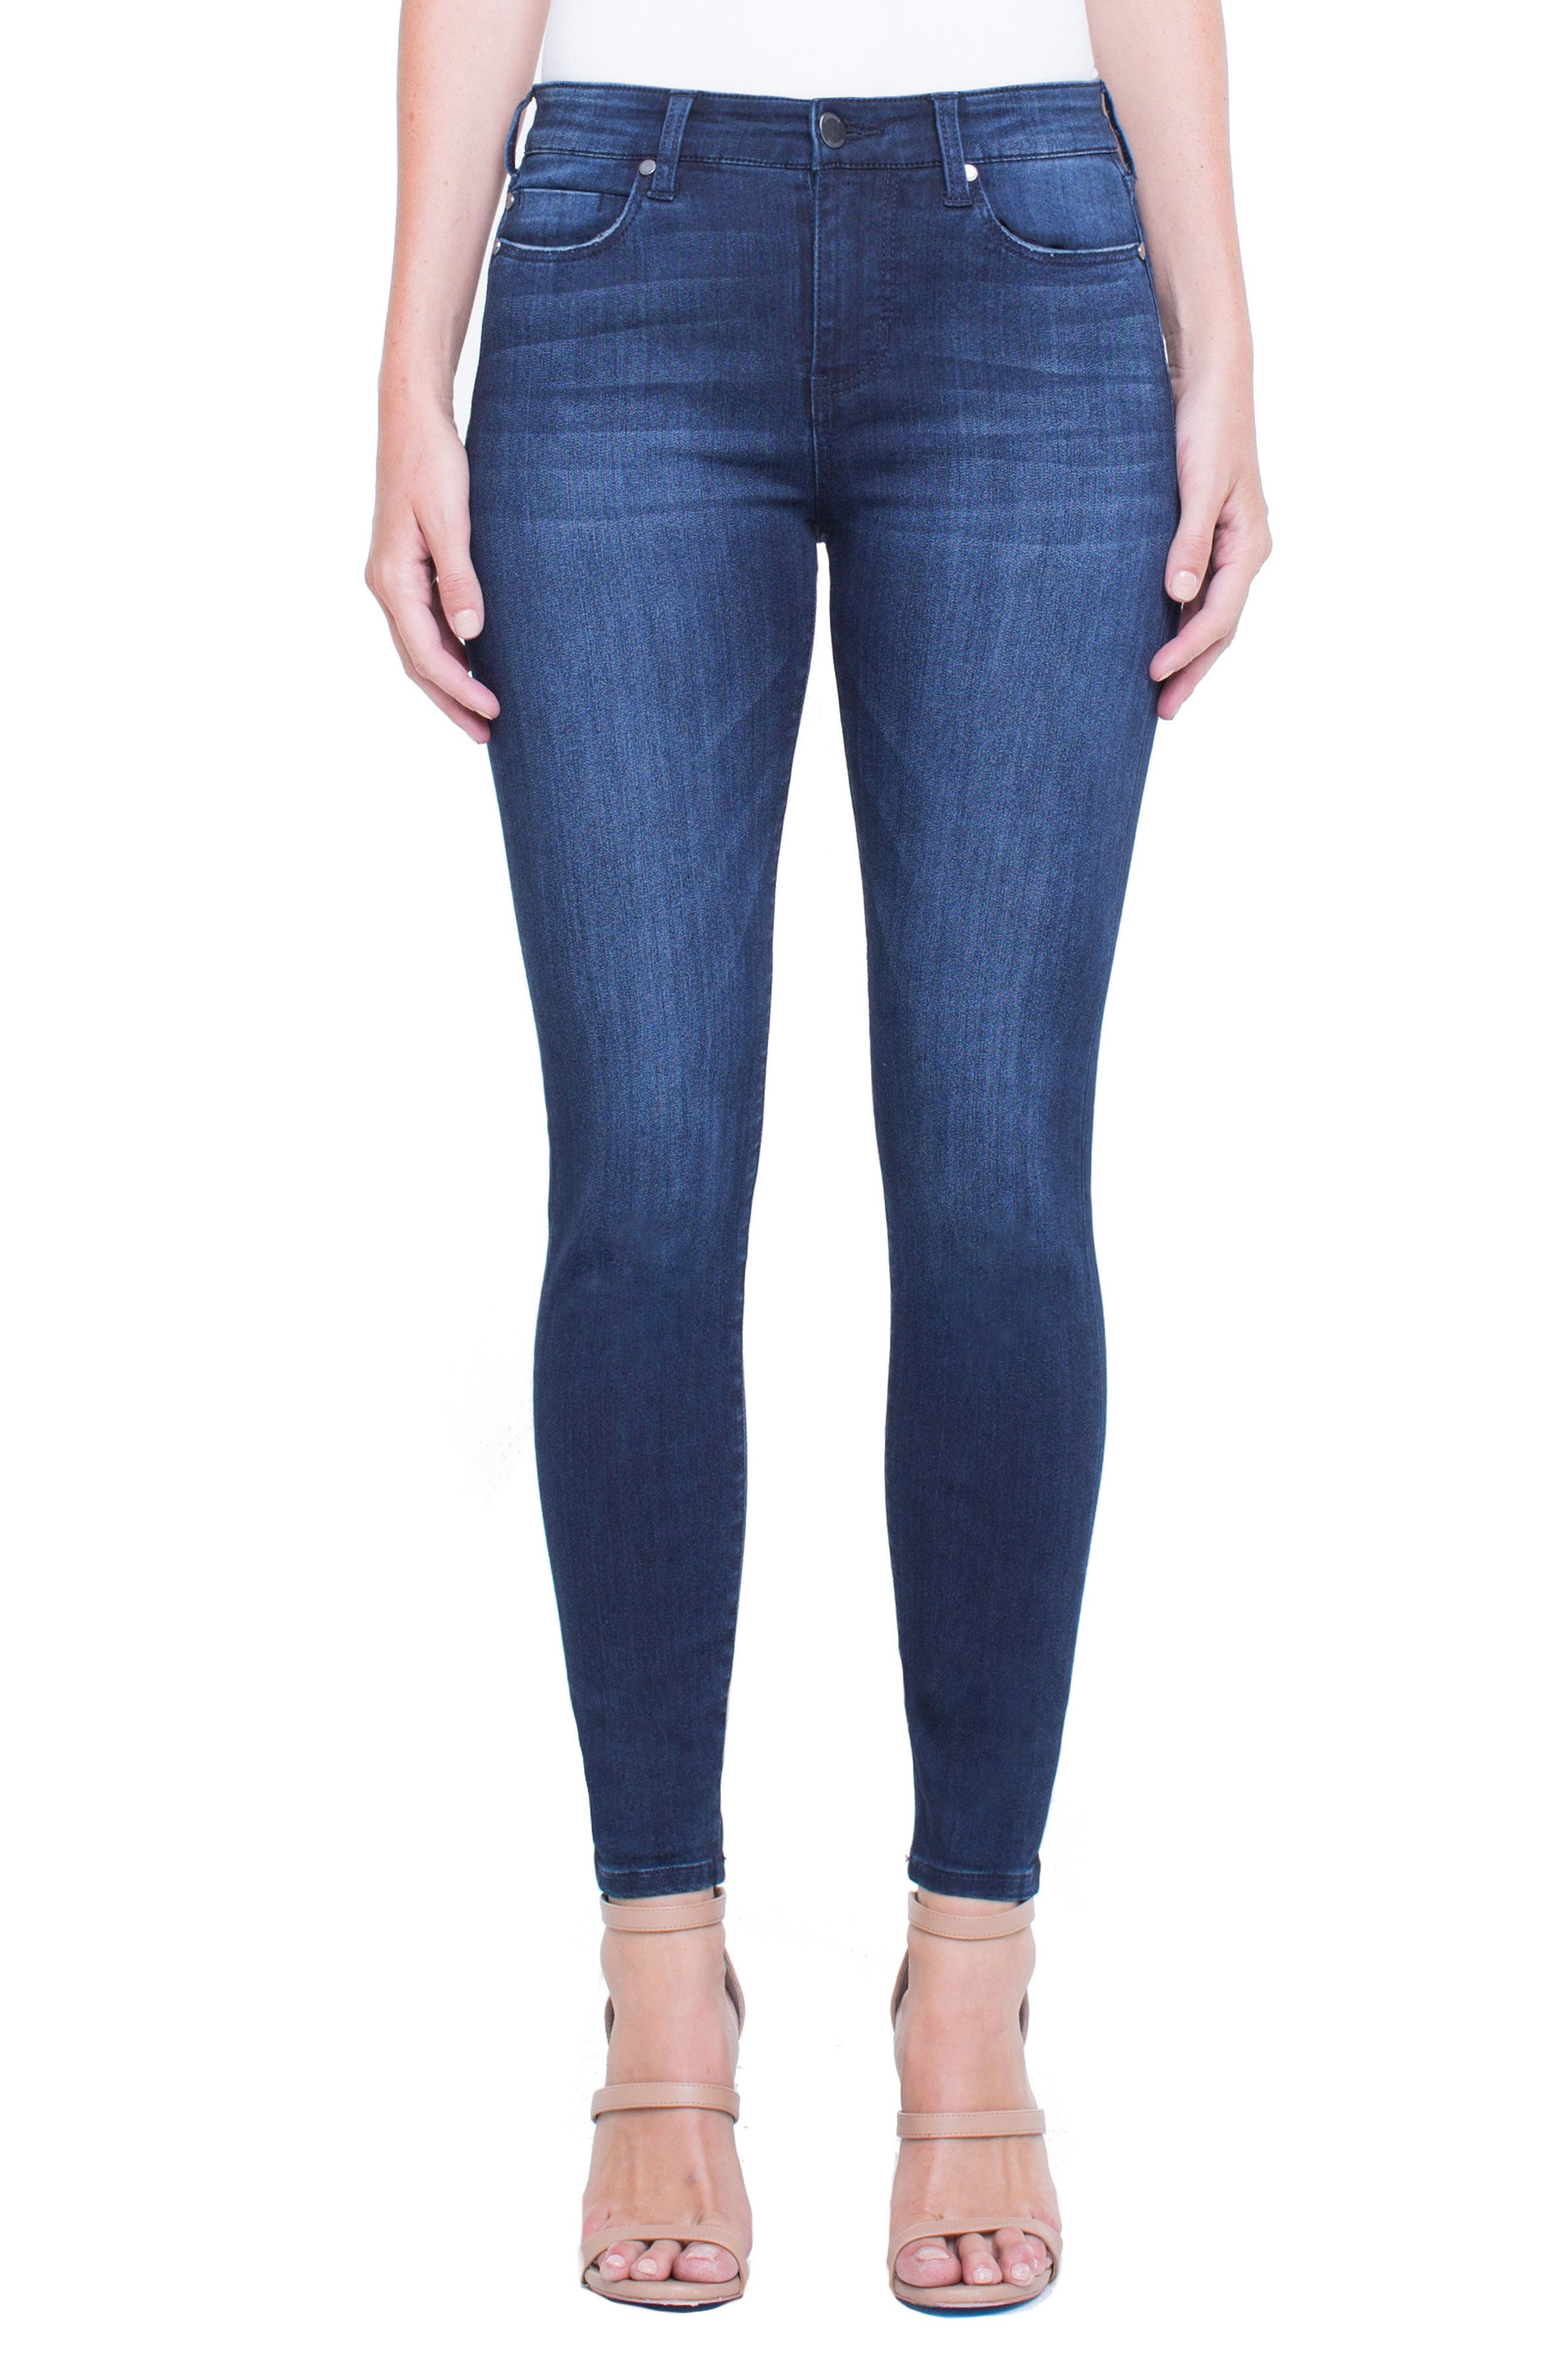 Jeans Company Penny Ankle Skinny Jeans,                             Main thumbnail 1, color,                             WESTPORT WASH